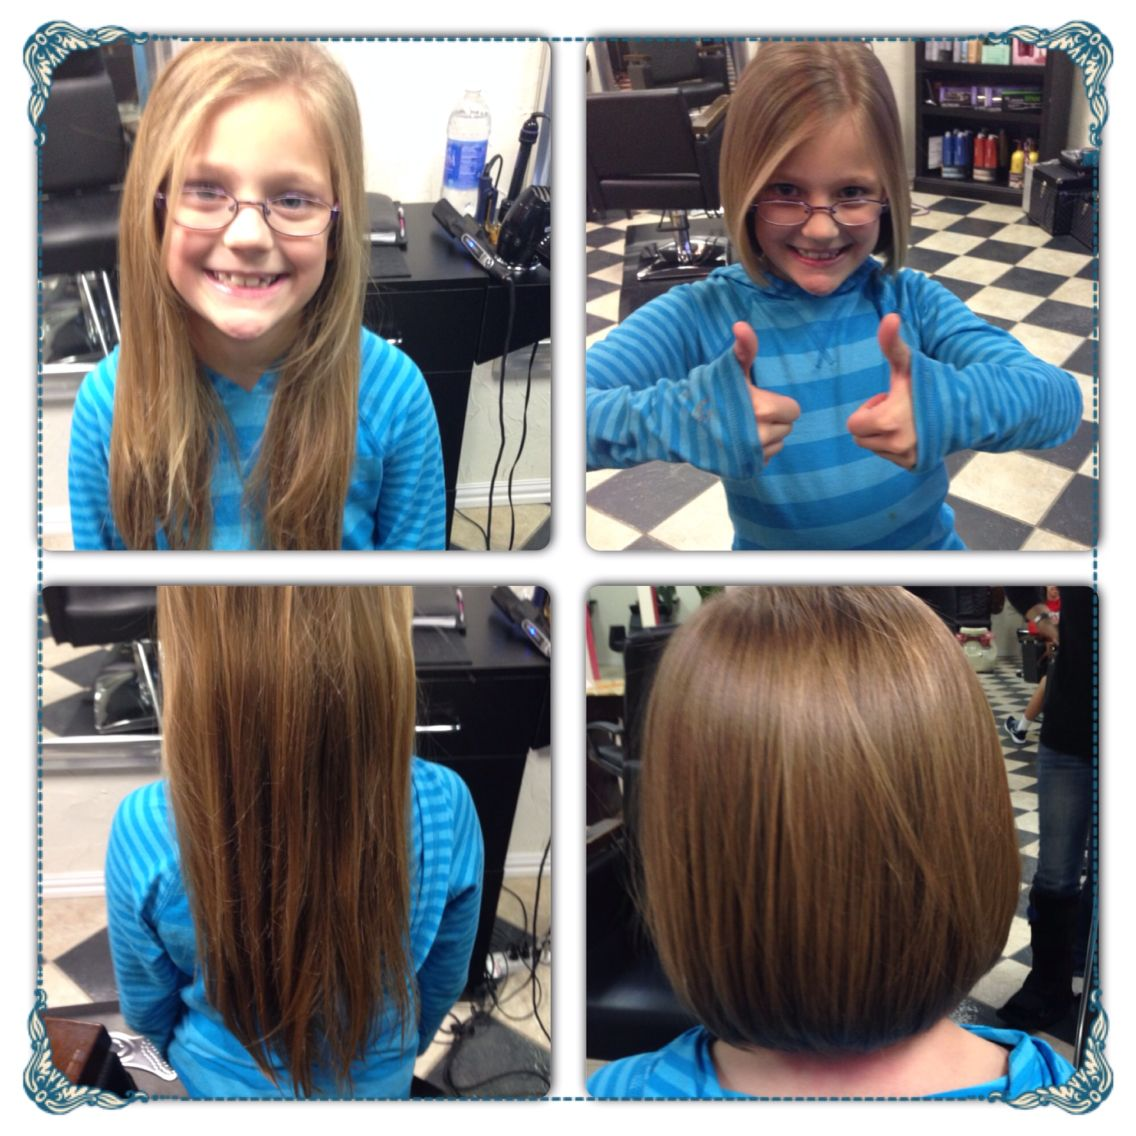 Before And After Haircut Shae Cut Off 12 Inches To Donate To